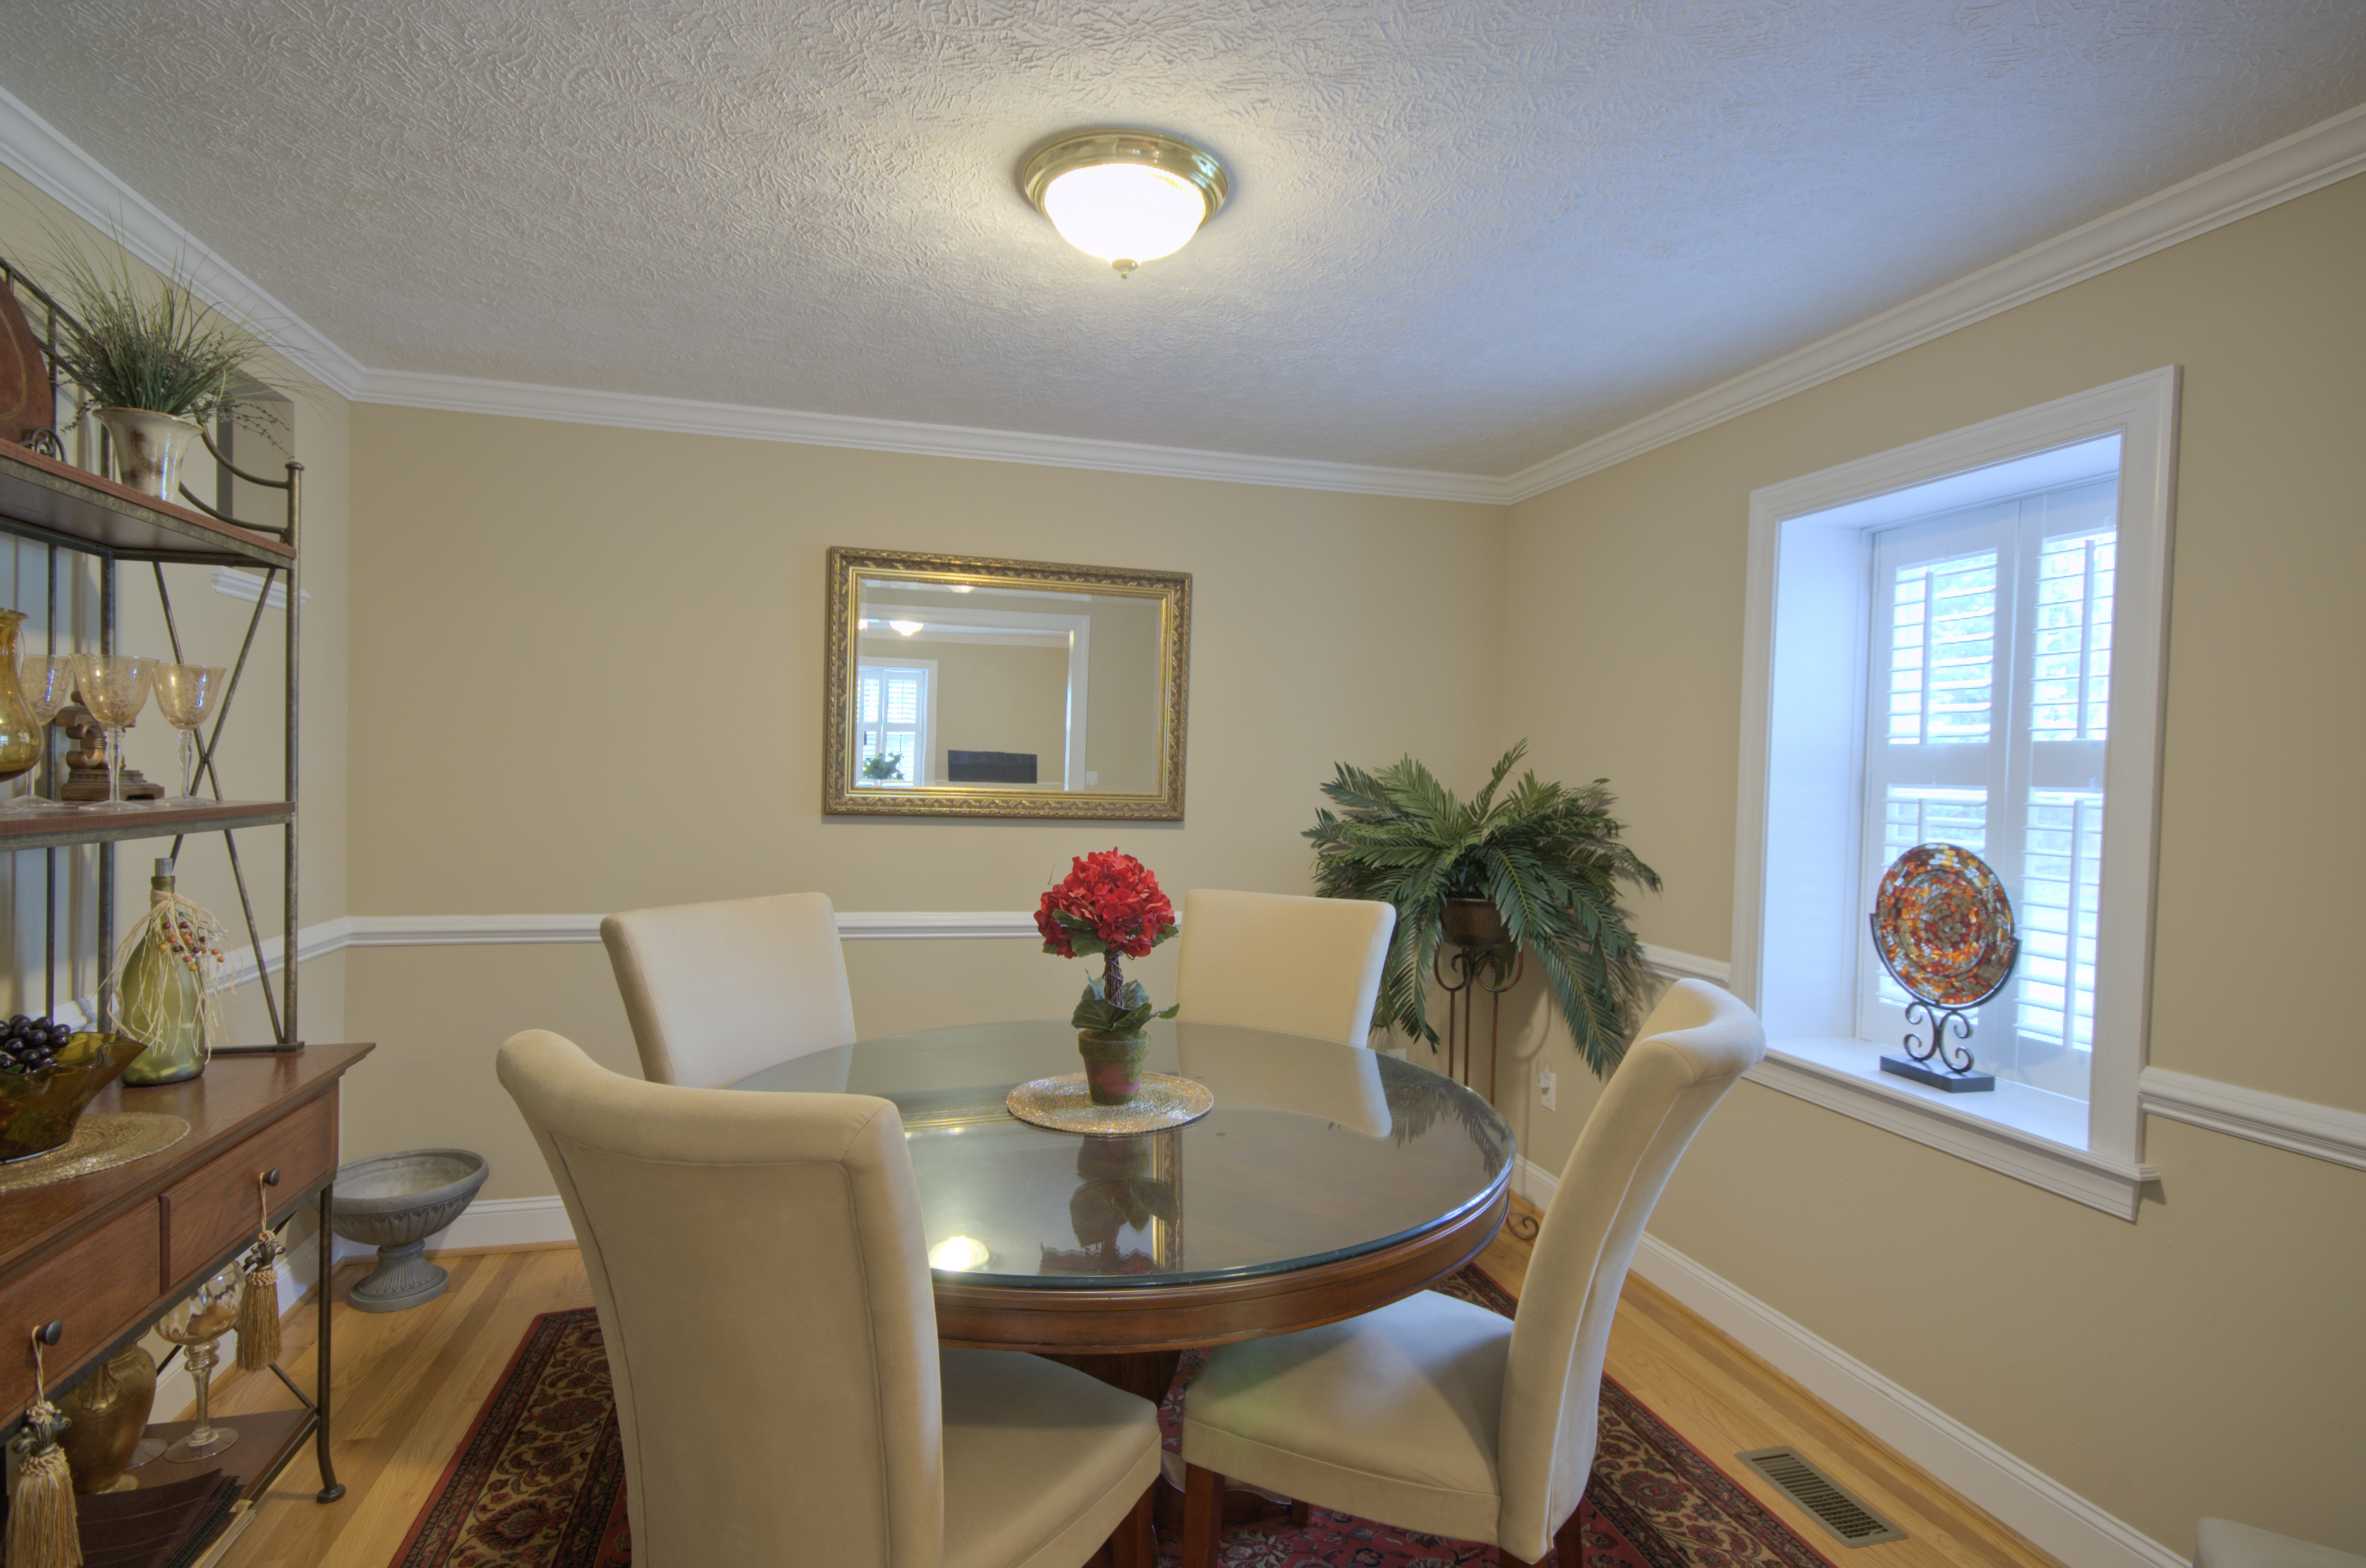 Dining Room with chair rail | Flickr - Photo Sharing!